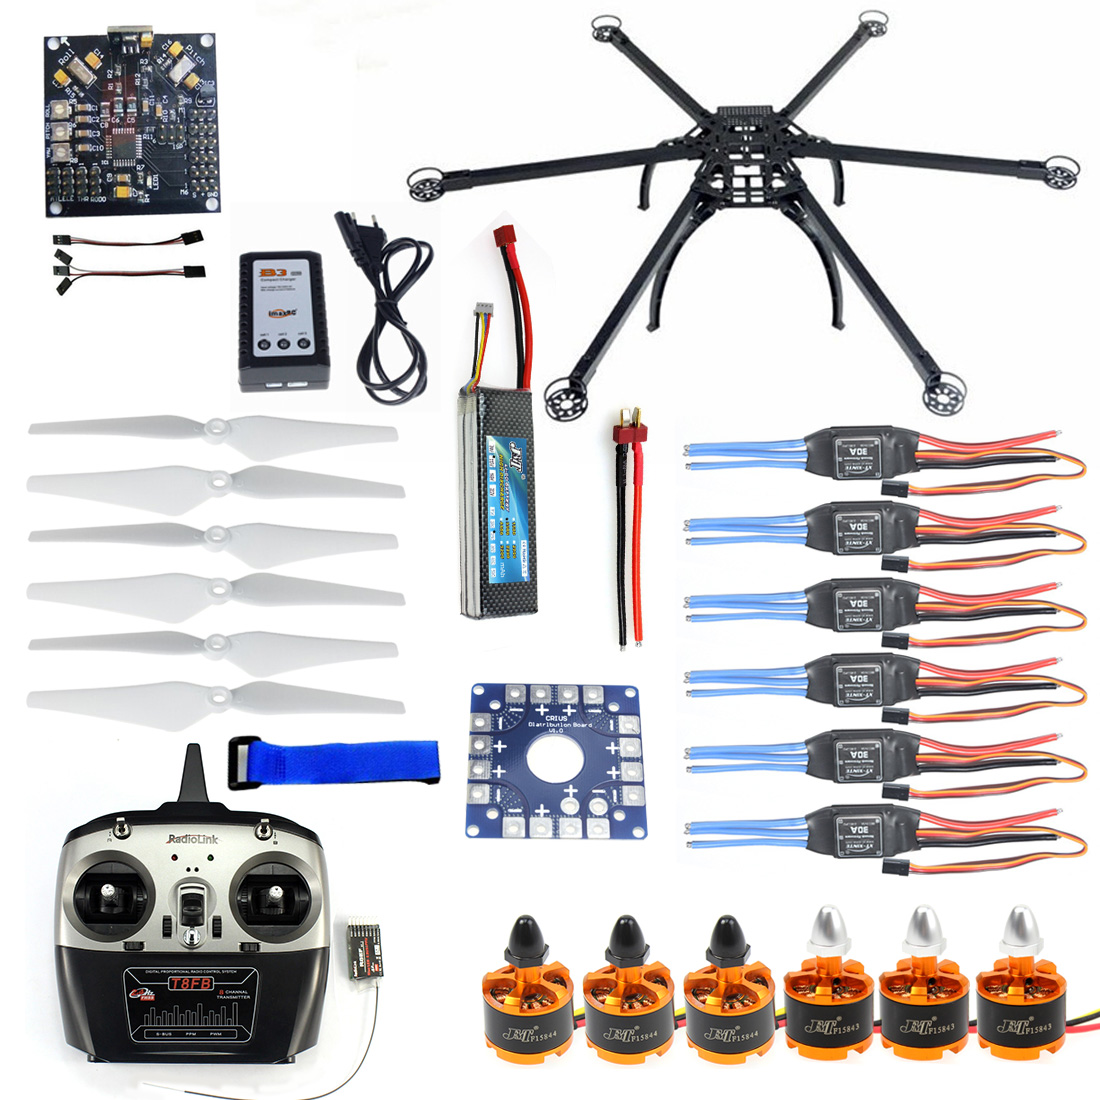 Folding Hexacopter Aircraft Unassembled Full Frame Kit 6CH TX&RX ESC Motor KK board Battery Charger F10513-B 250 mini 250 carbon fiber aircraft frame rtf kit with radiolink t6ehp e tx&rx battery charger full assembled f09205 b